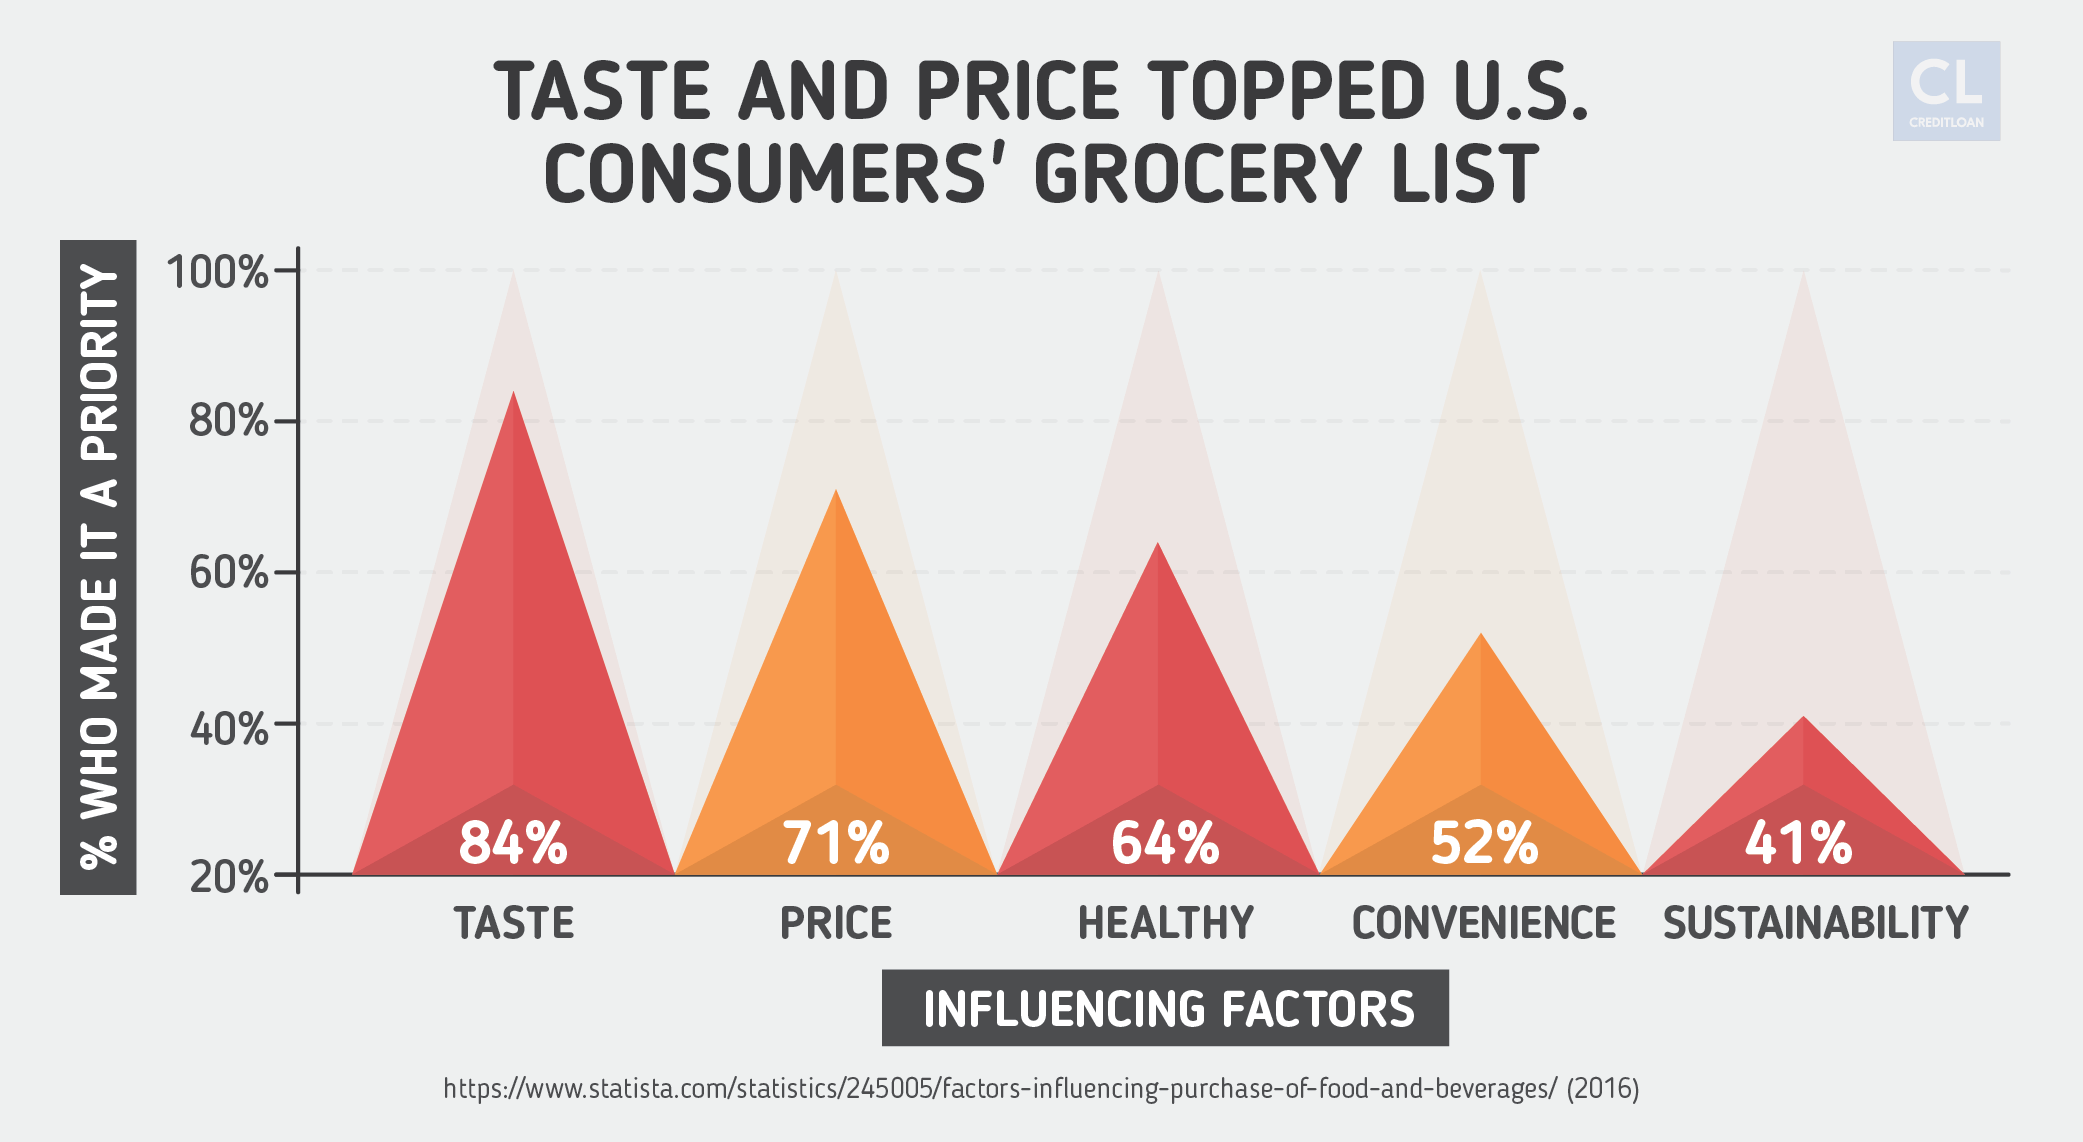 Taste and Price Topped U.S. Consumers' Grocery List